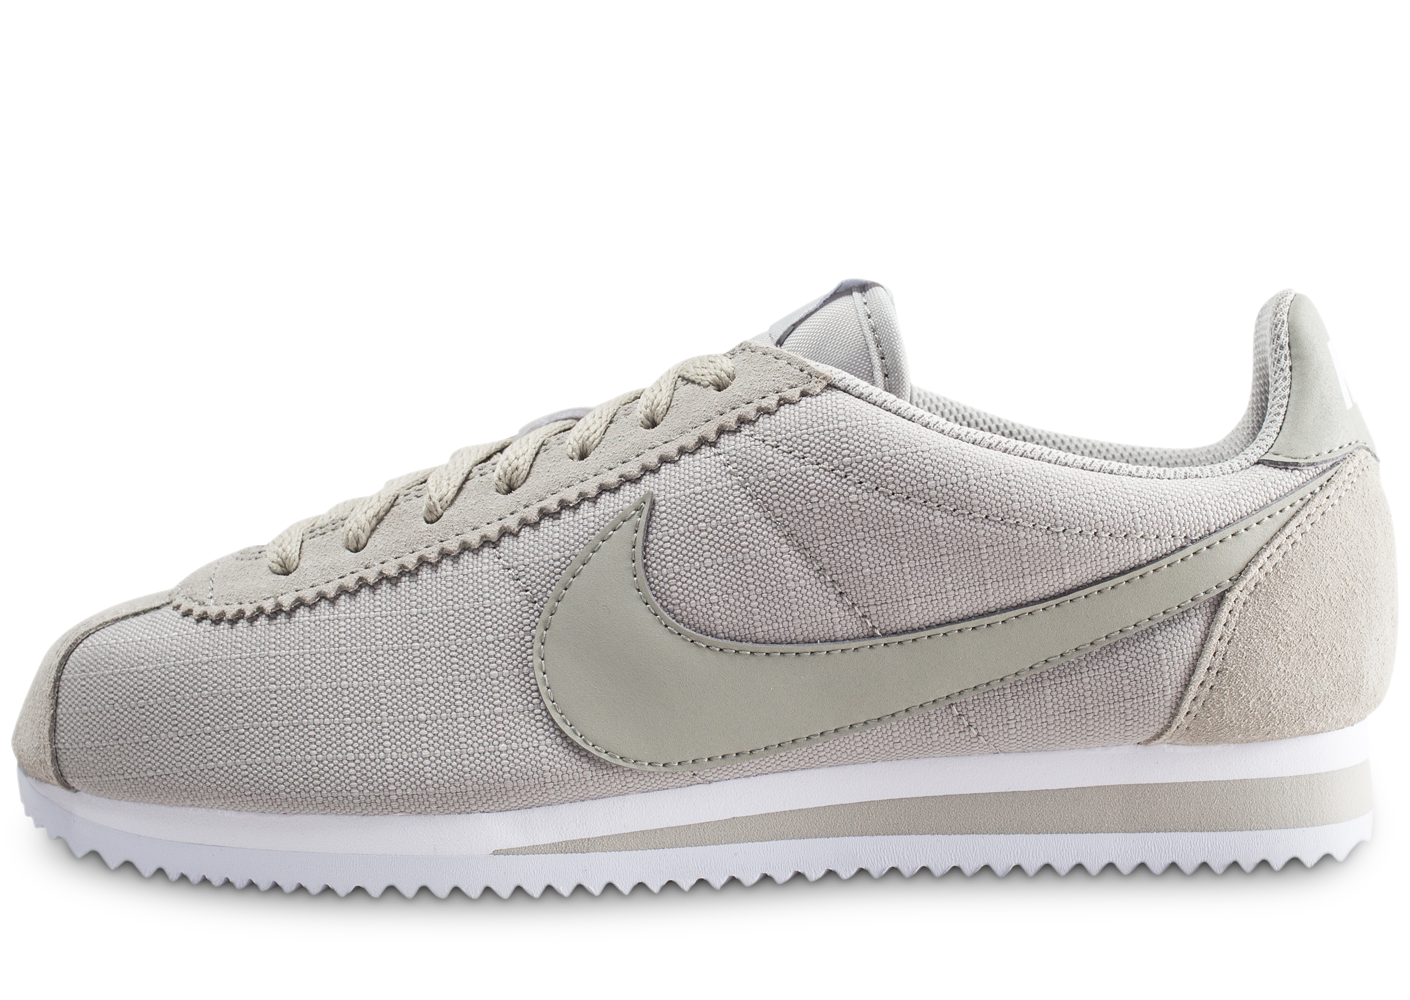 official photos 35150 90c9e Nike homme classic cortez nylon grise baskets